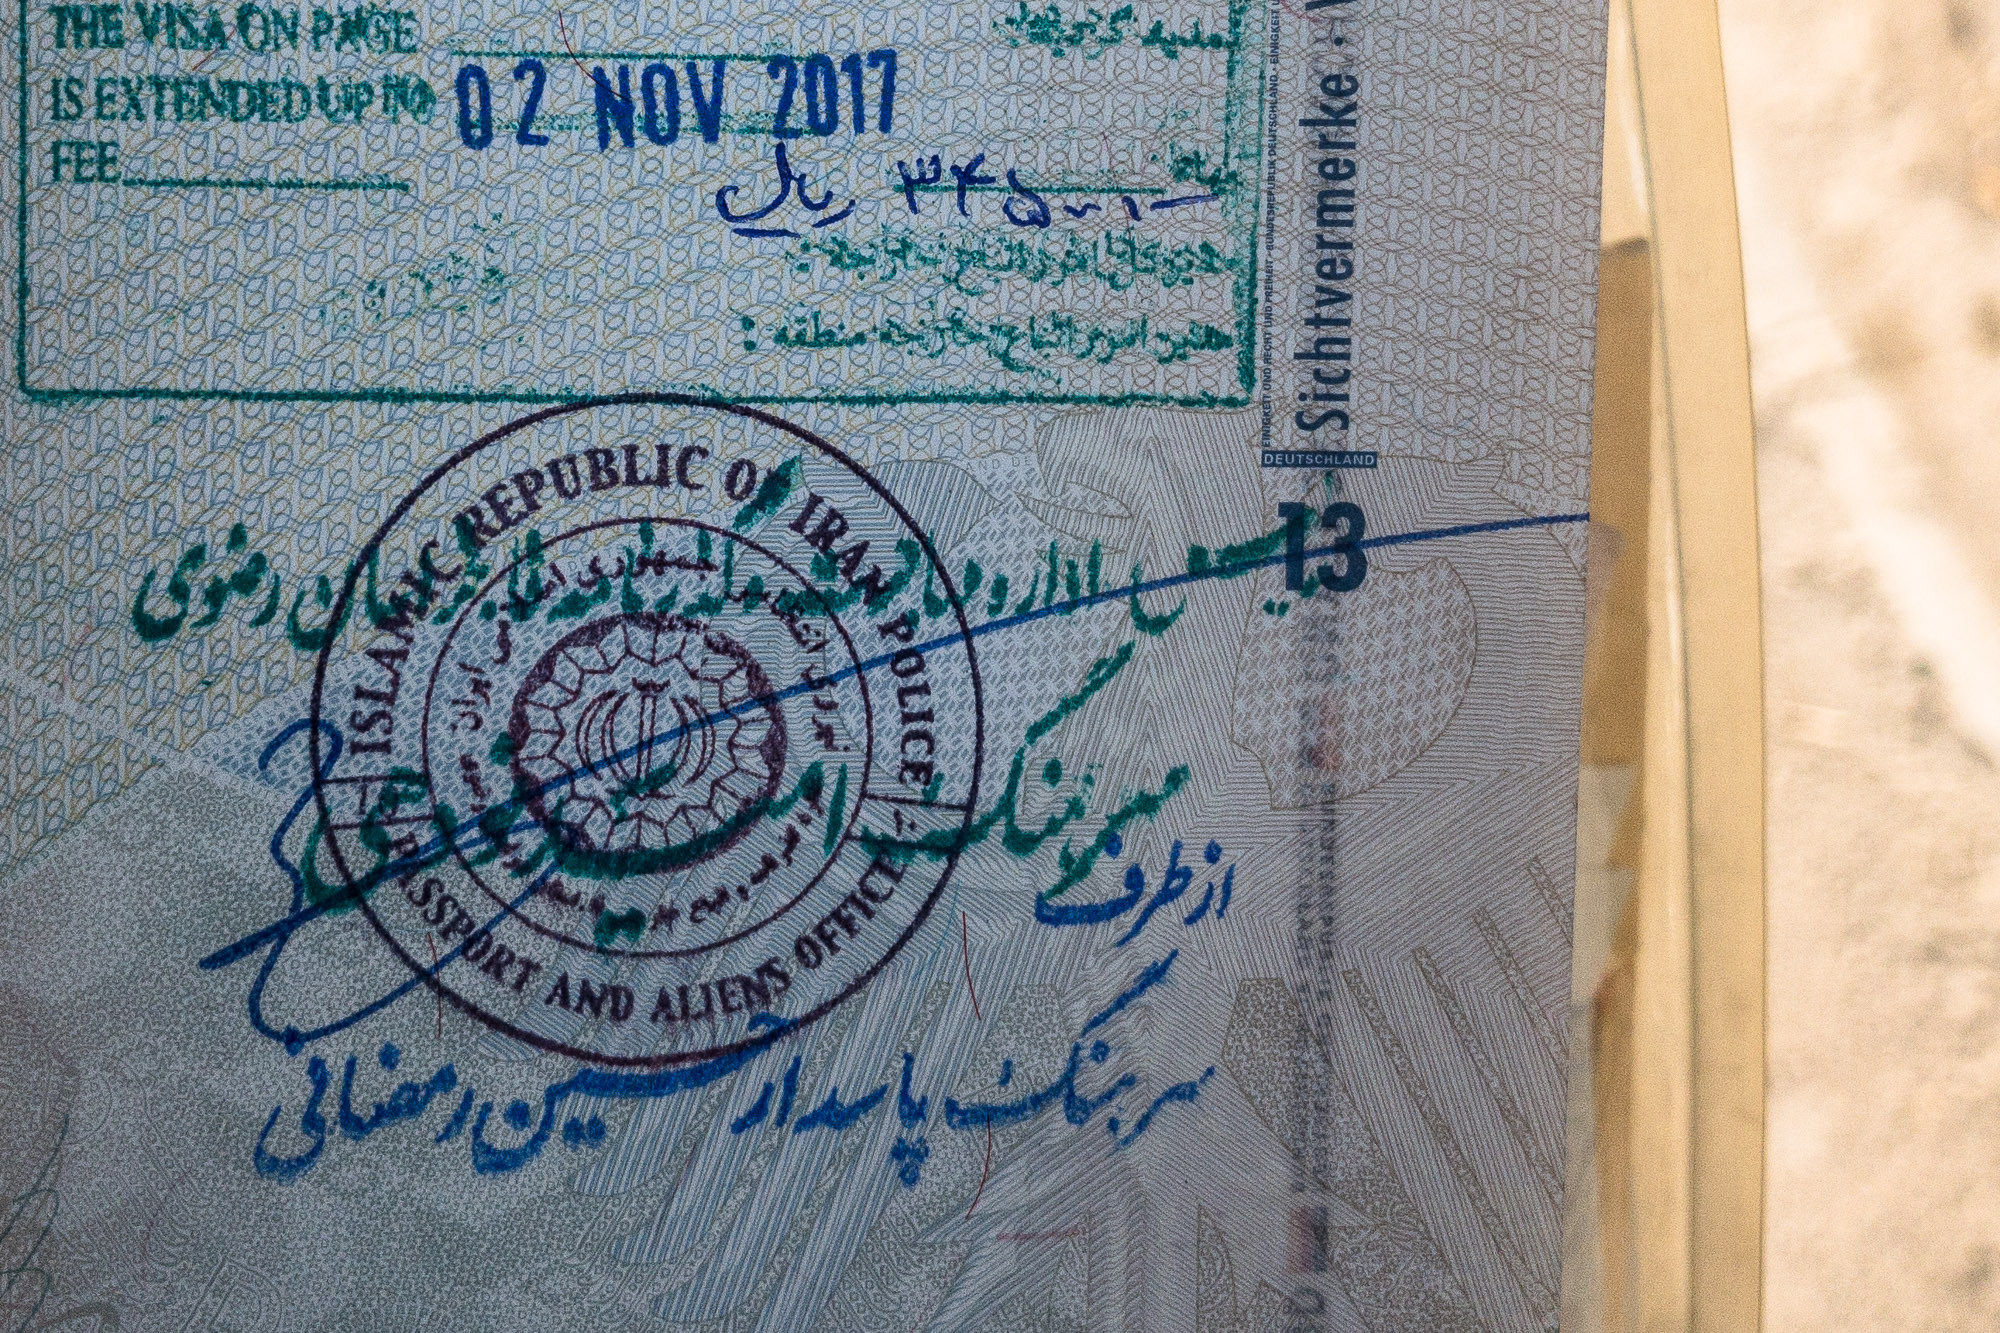 visa extension in Iran